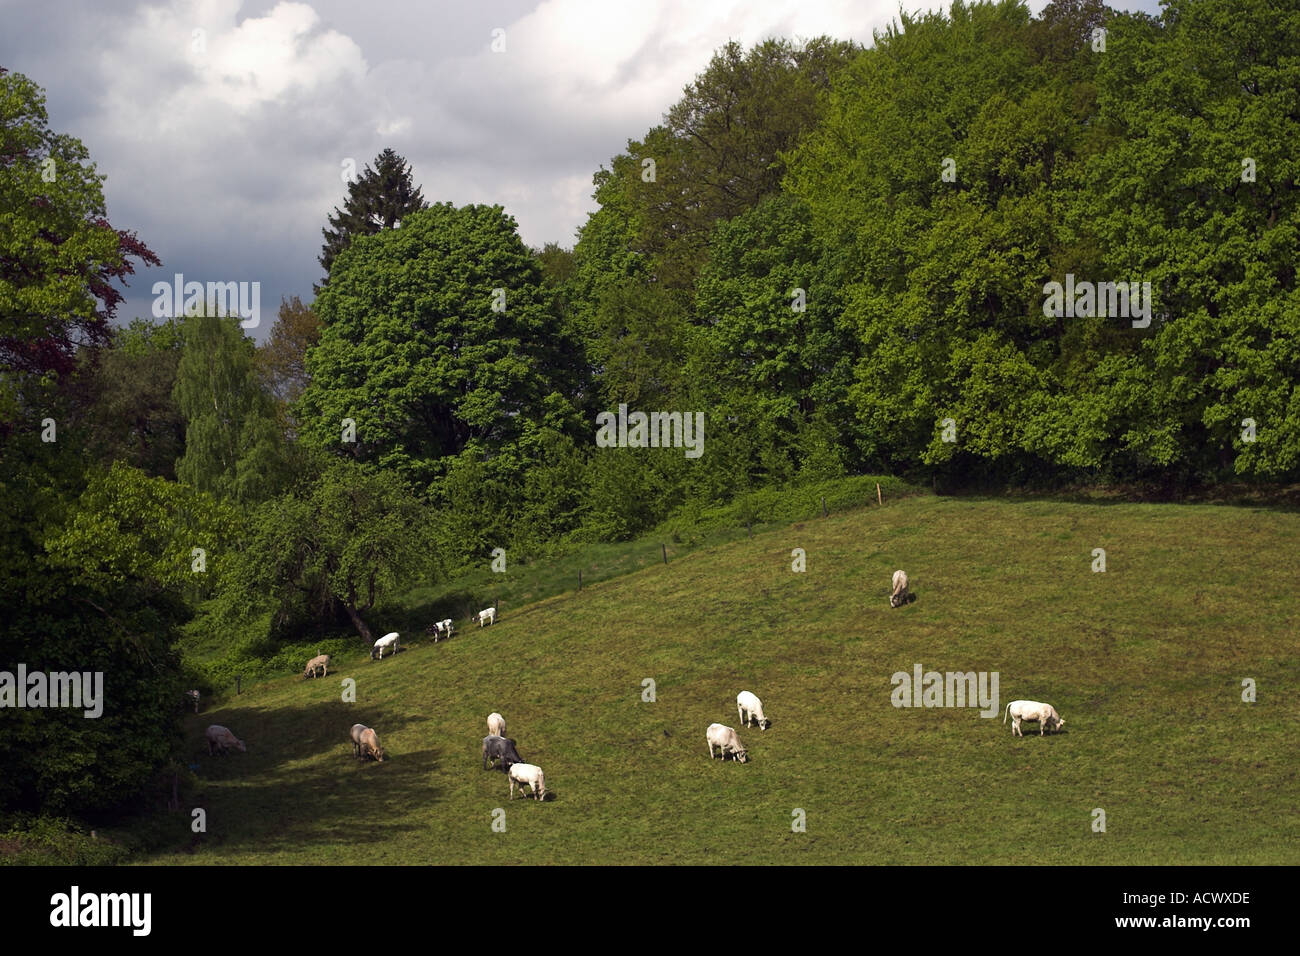 field populated with cows seen from above during spring in Aachen Germany - Stock Image